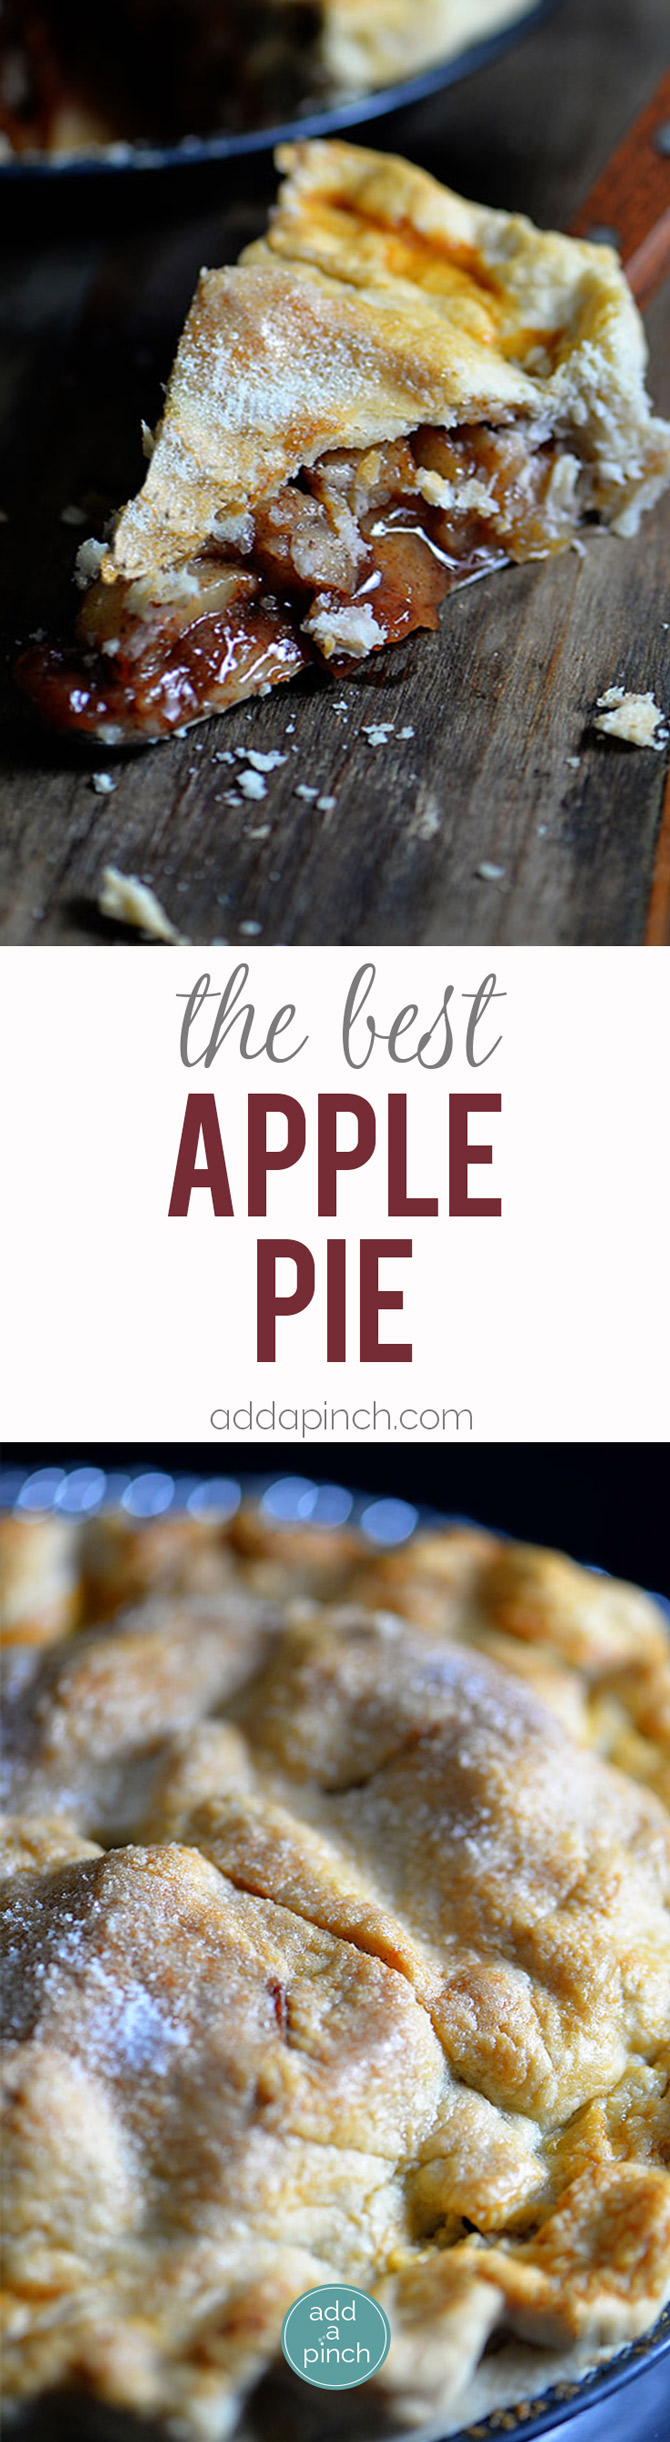 Apple Pie Recipe - Apple Pie is a simple, classic and delicious pie recipe. This apple pie recipe is a family favorite recipe used for generations. // addapinch.com